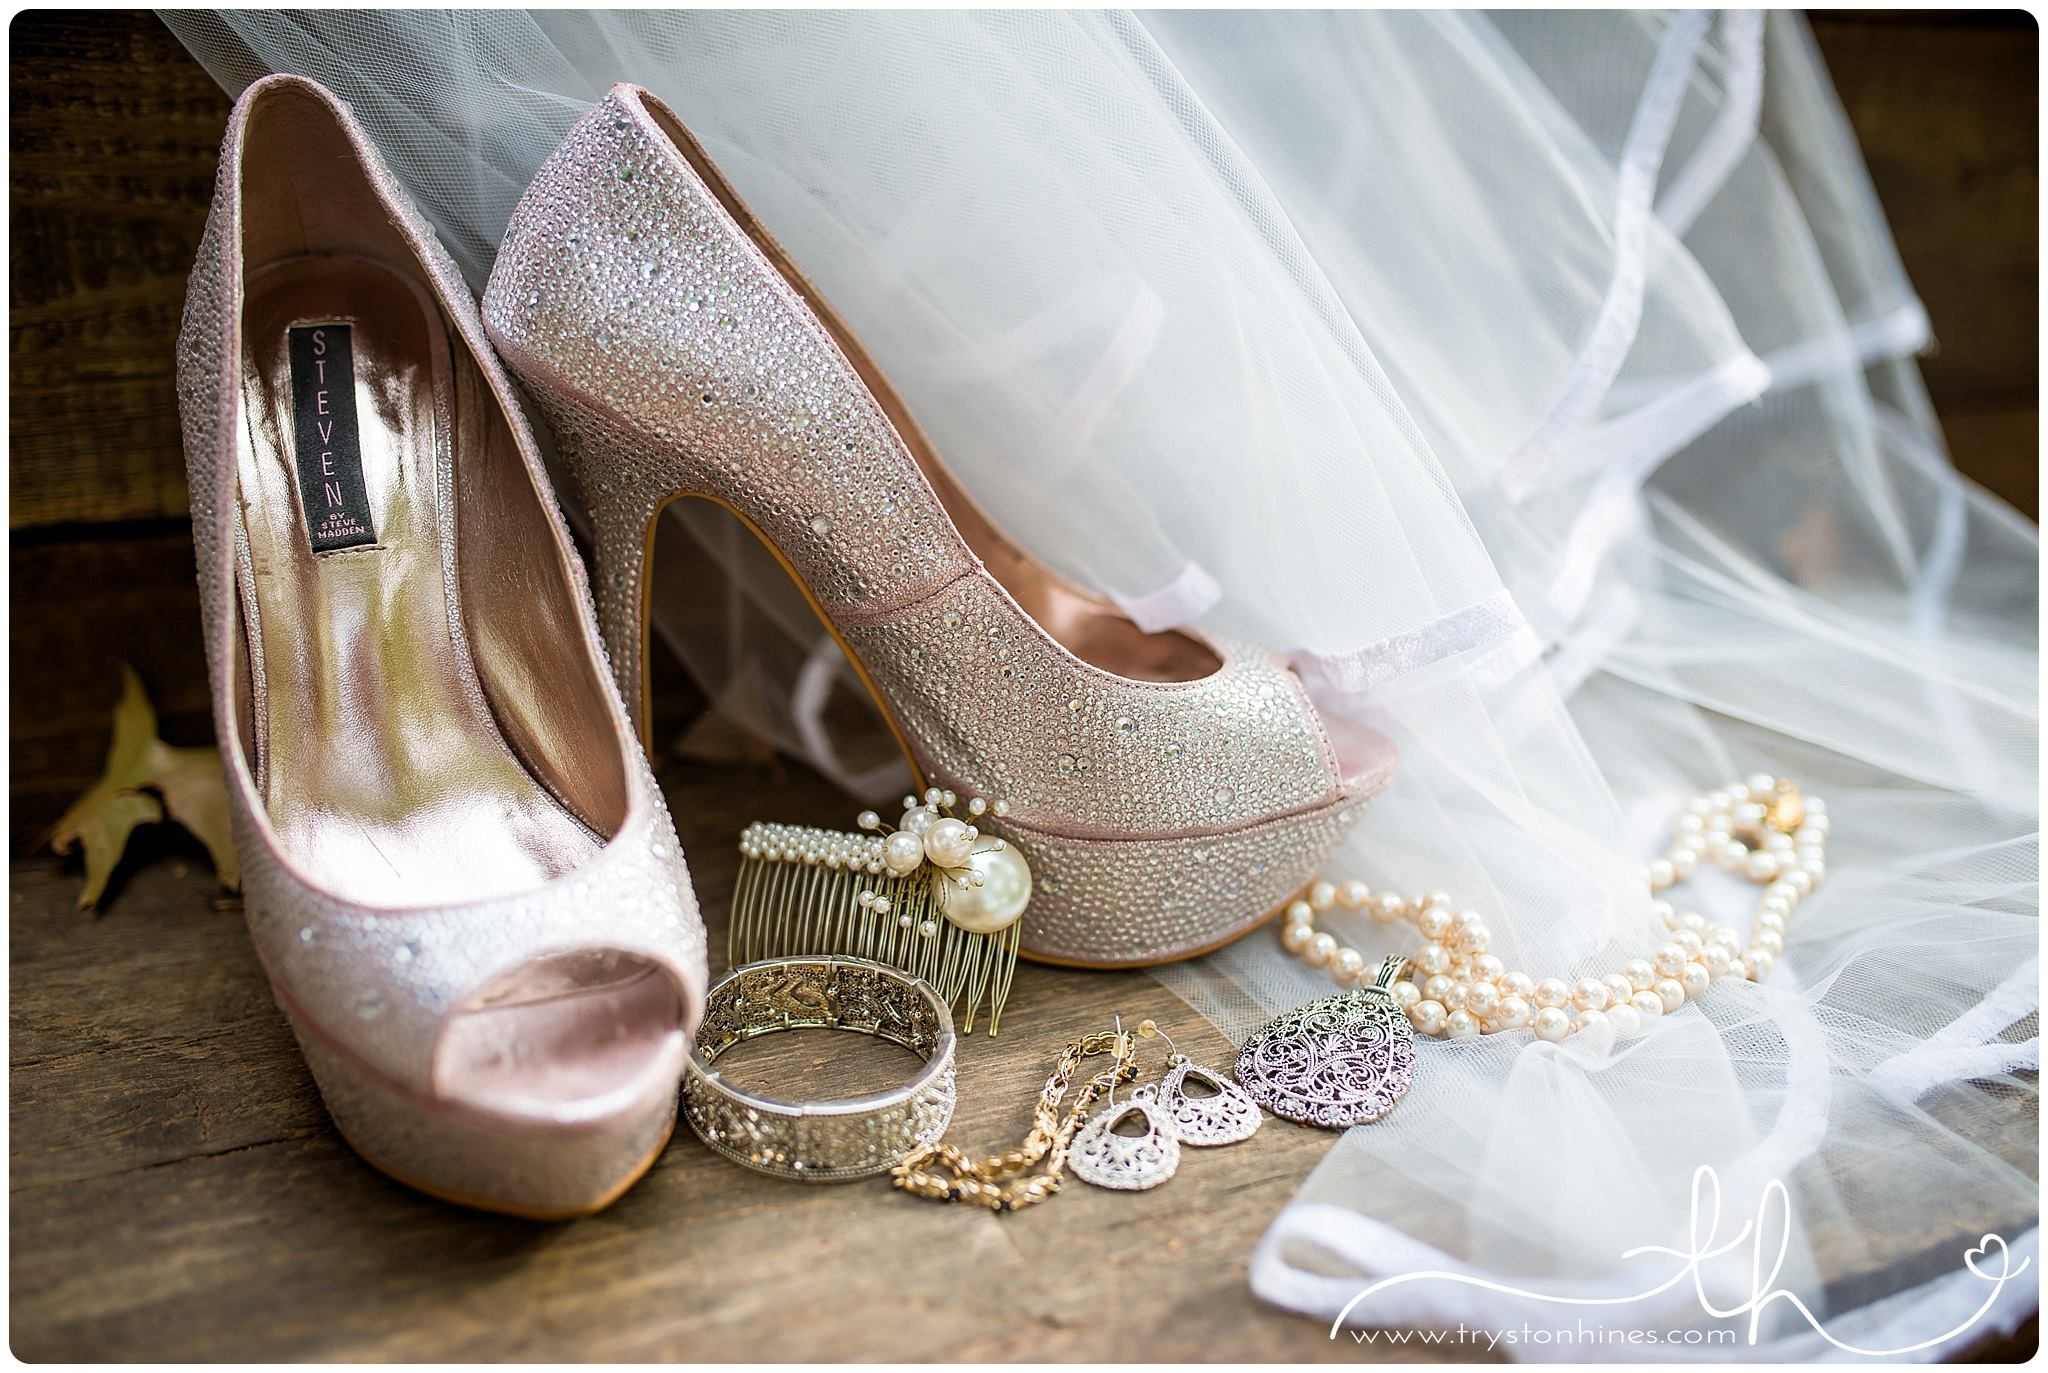 Tryston Hines Photography , from  Jaime + Jake 's wedding